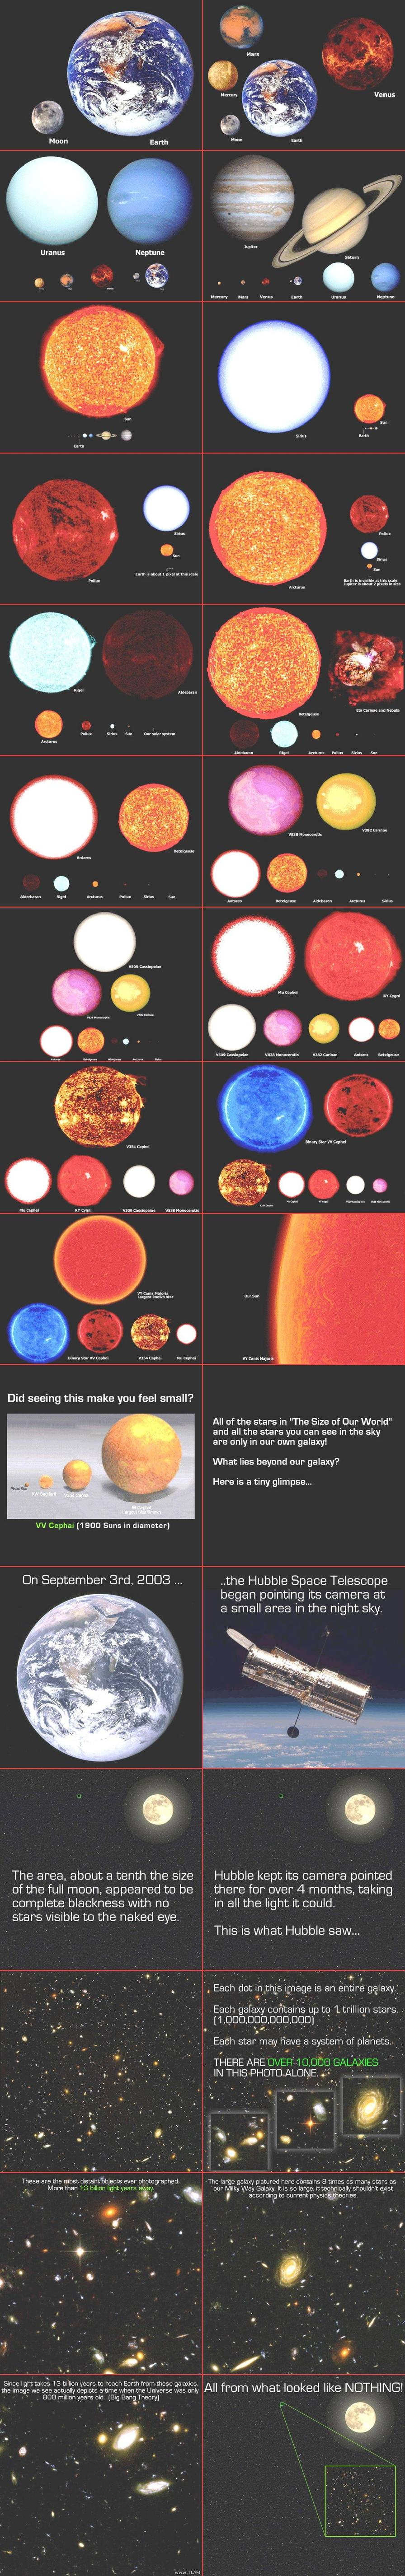 Scale Of The Planets